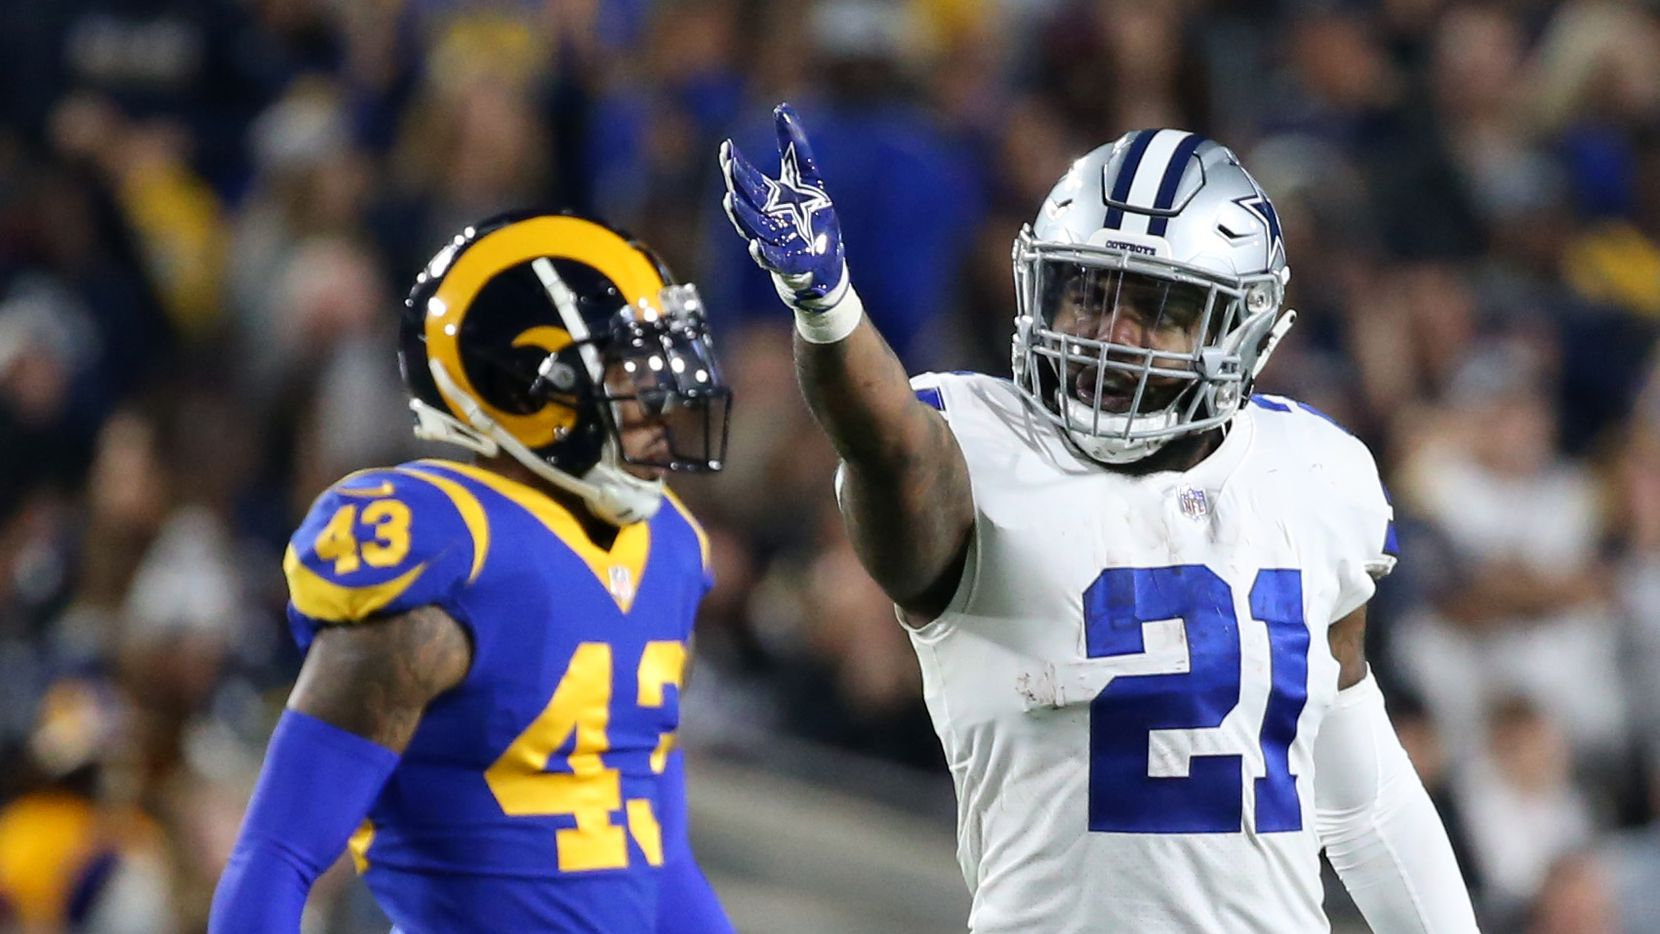 Dallas Cowboys running back Ezekiel Elliott (21) celebrates after moving the ball against the Los Angeles Rams in the first quarter of the NFC divisional round playoff game at Los Angeles Memorial Coliseum in Los Angeles, Calif. on Saturday, Jan. 12, 2019.